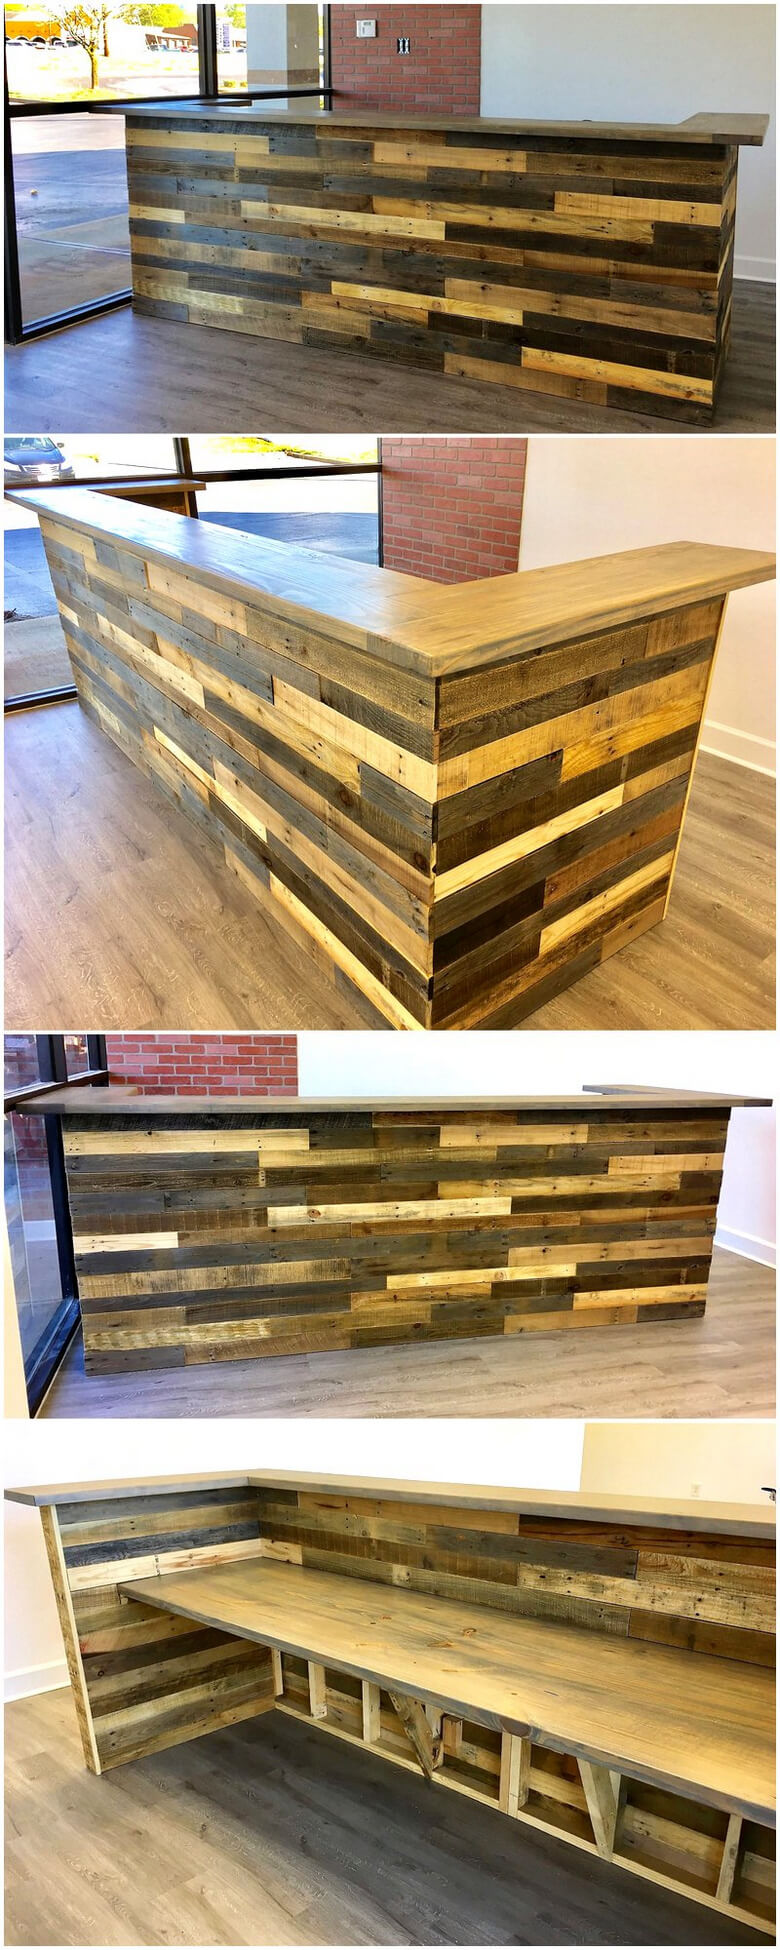 Really Functional Creations with Wood Pallets  Wood Pallet Furniture